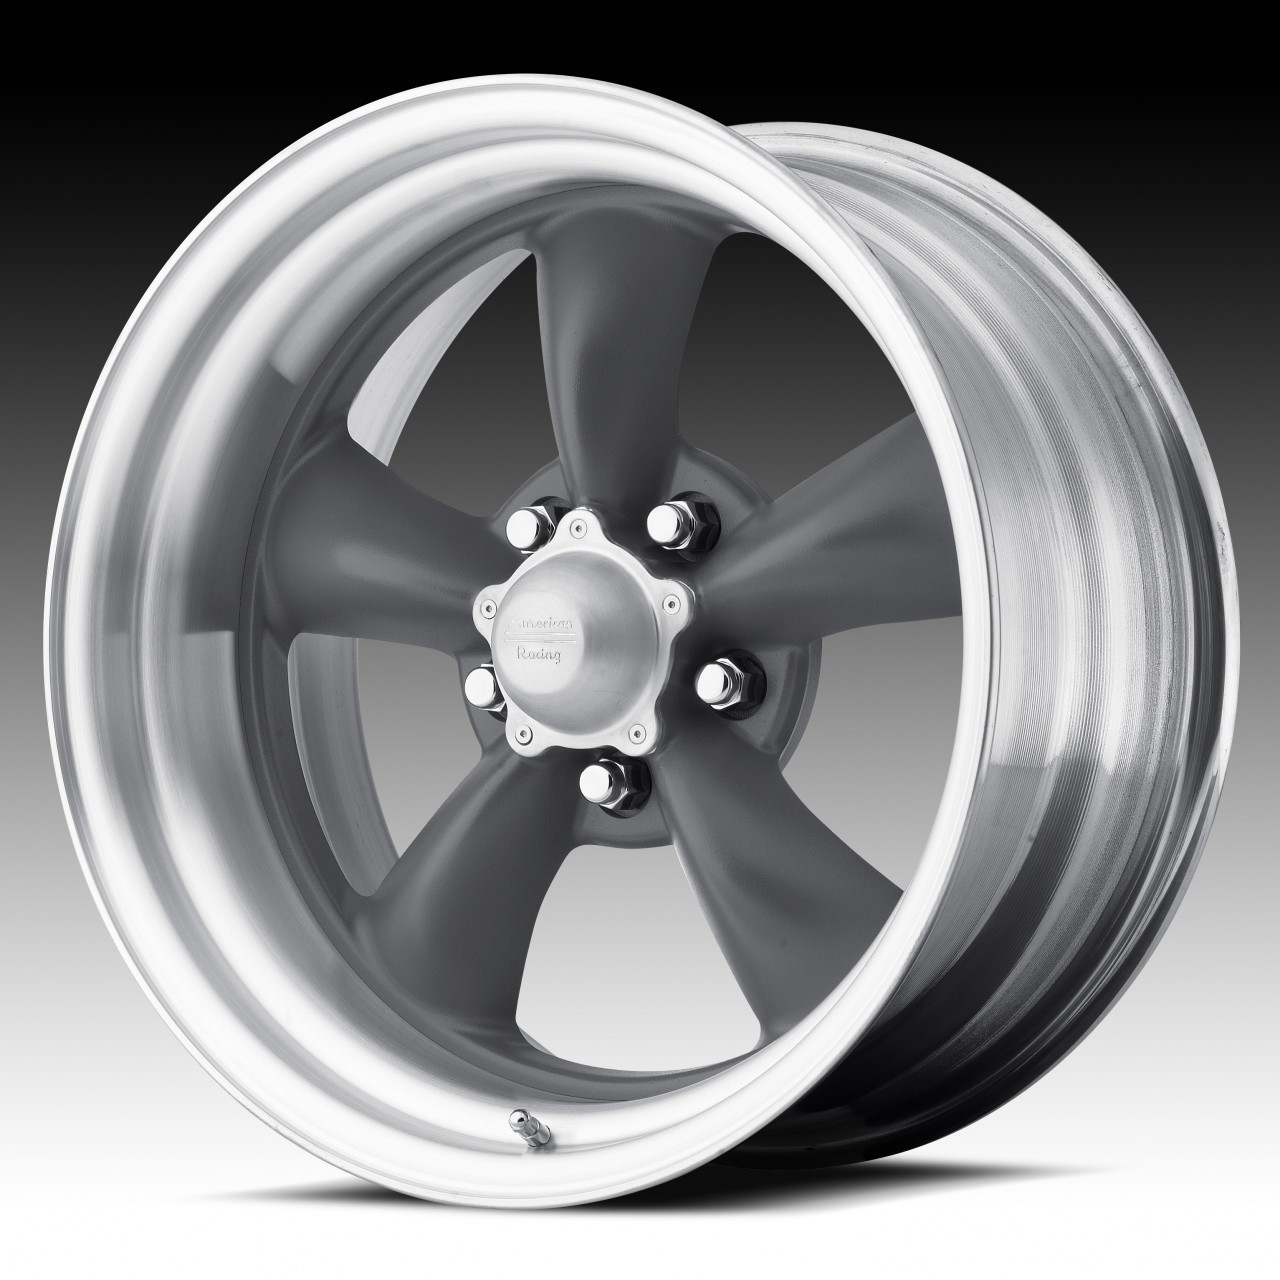 American Racing Camarofirebird 82 2002 Torque Thrust Ii Wheels